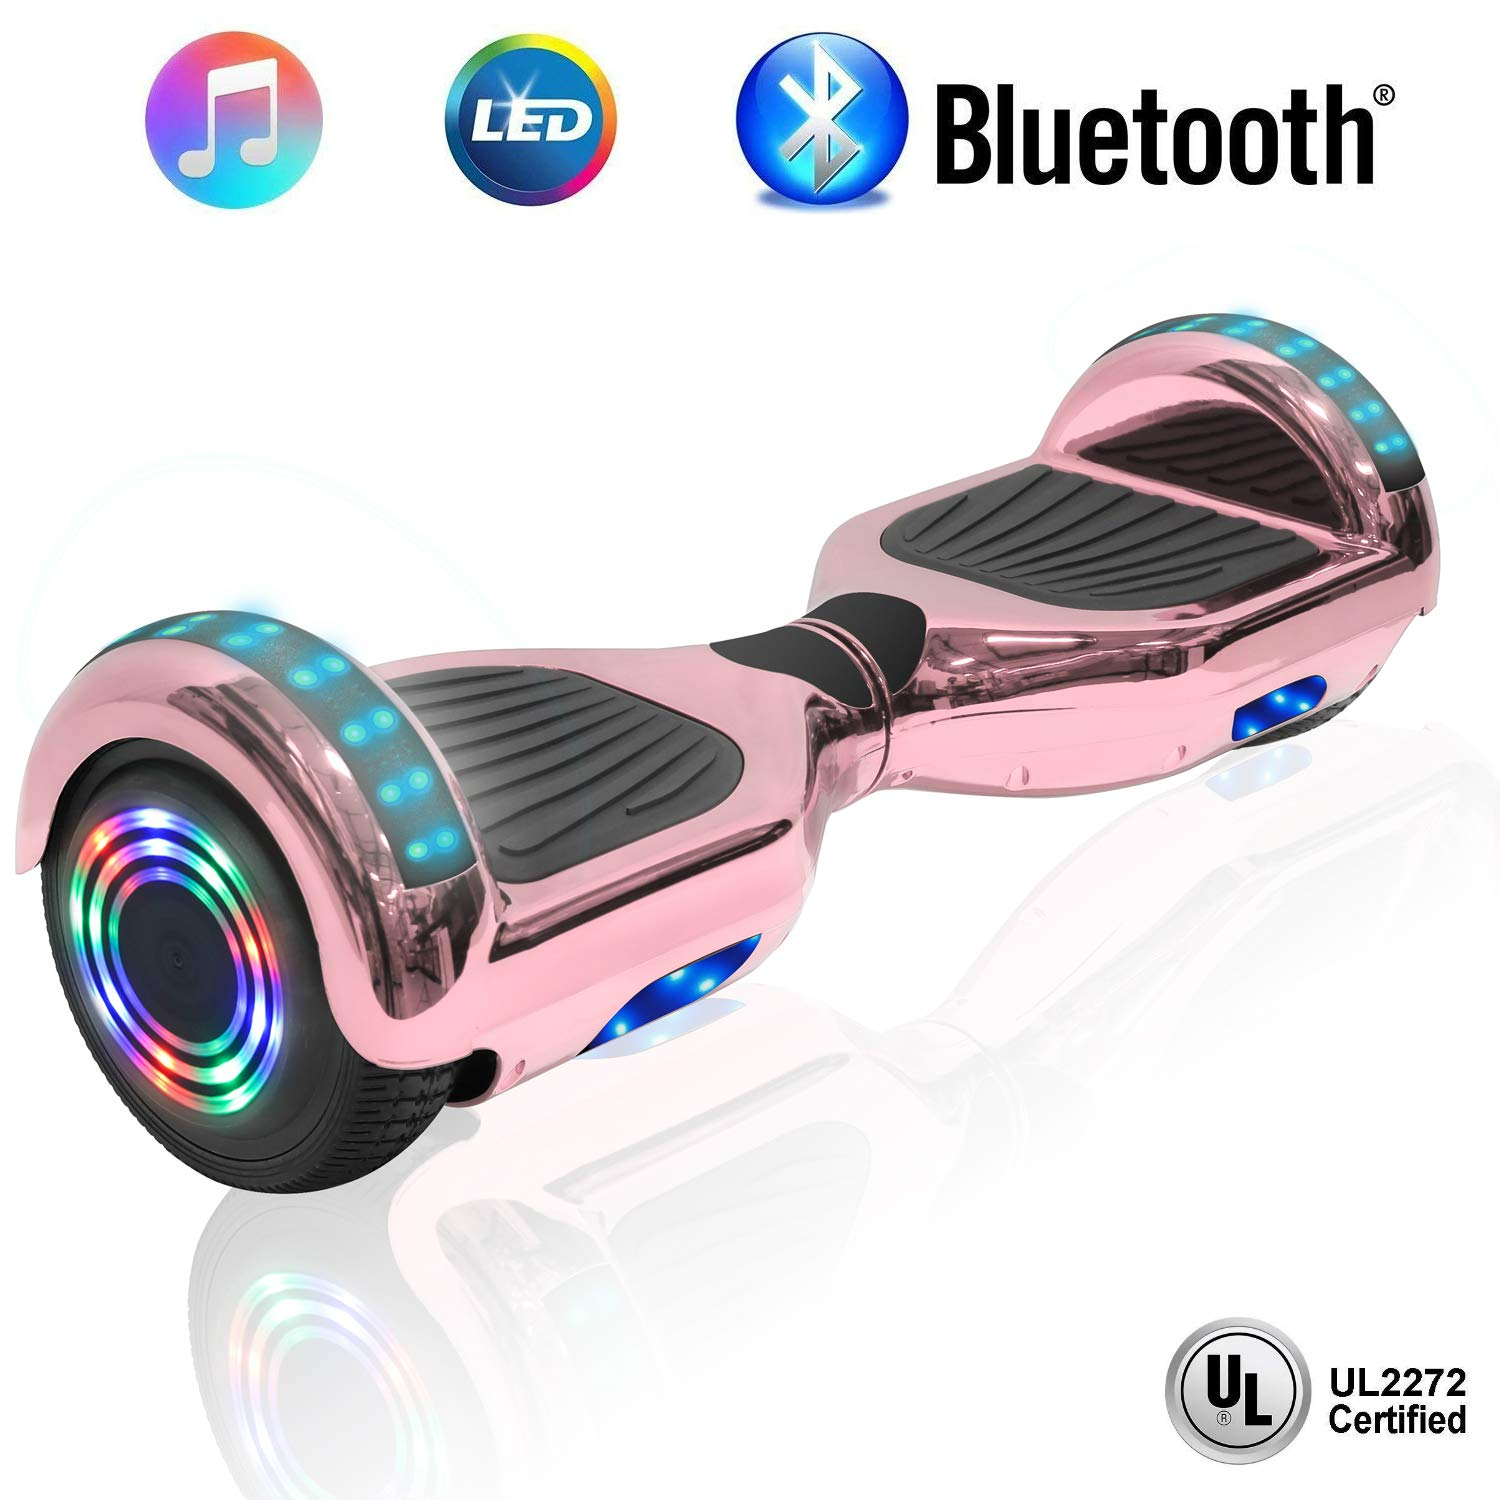 NHT 6.5'' Hoverboard Electric Self Balancing Scooter Sidelights - UL2272 Certified Black, Blue, Pink, Red, White or Chrome Style (Chrome Rose Gold) by NHT (Image #1)